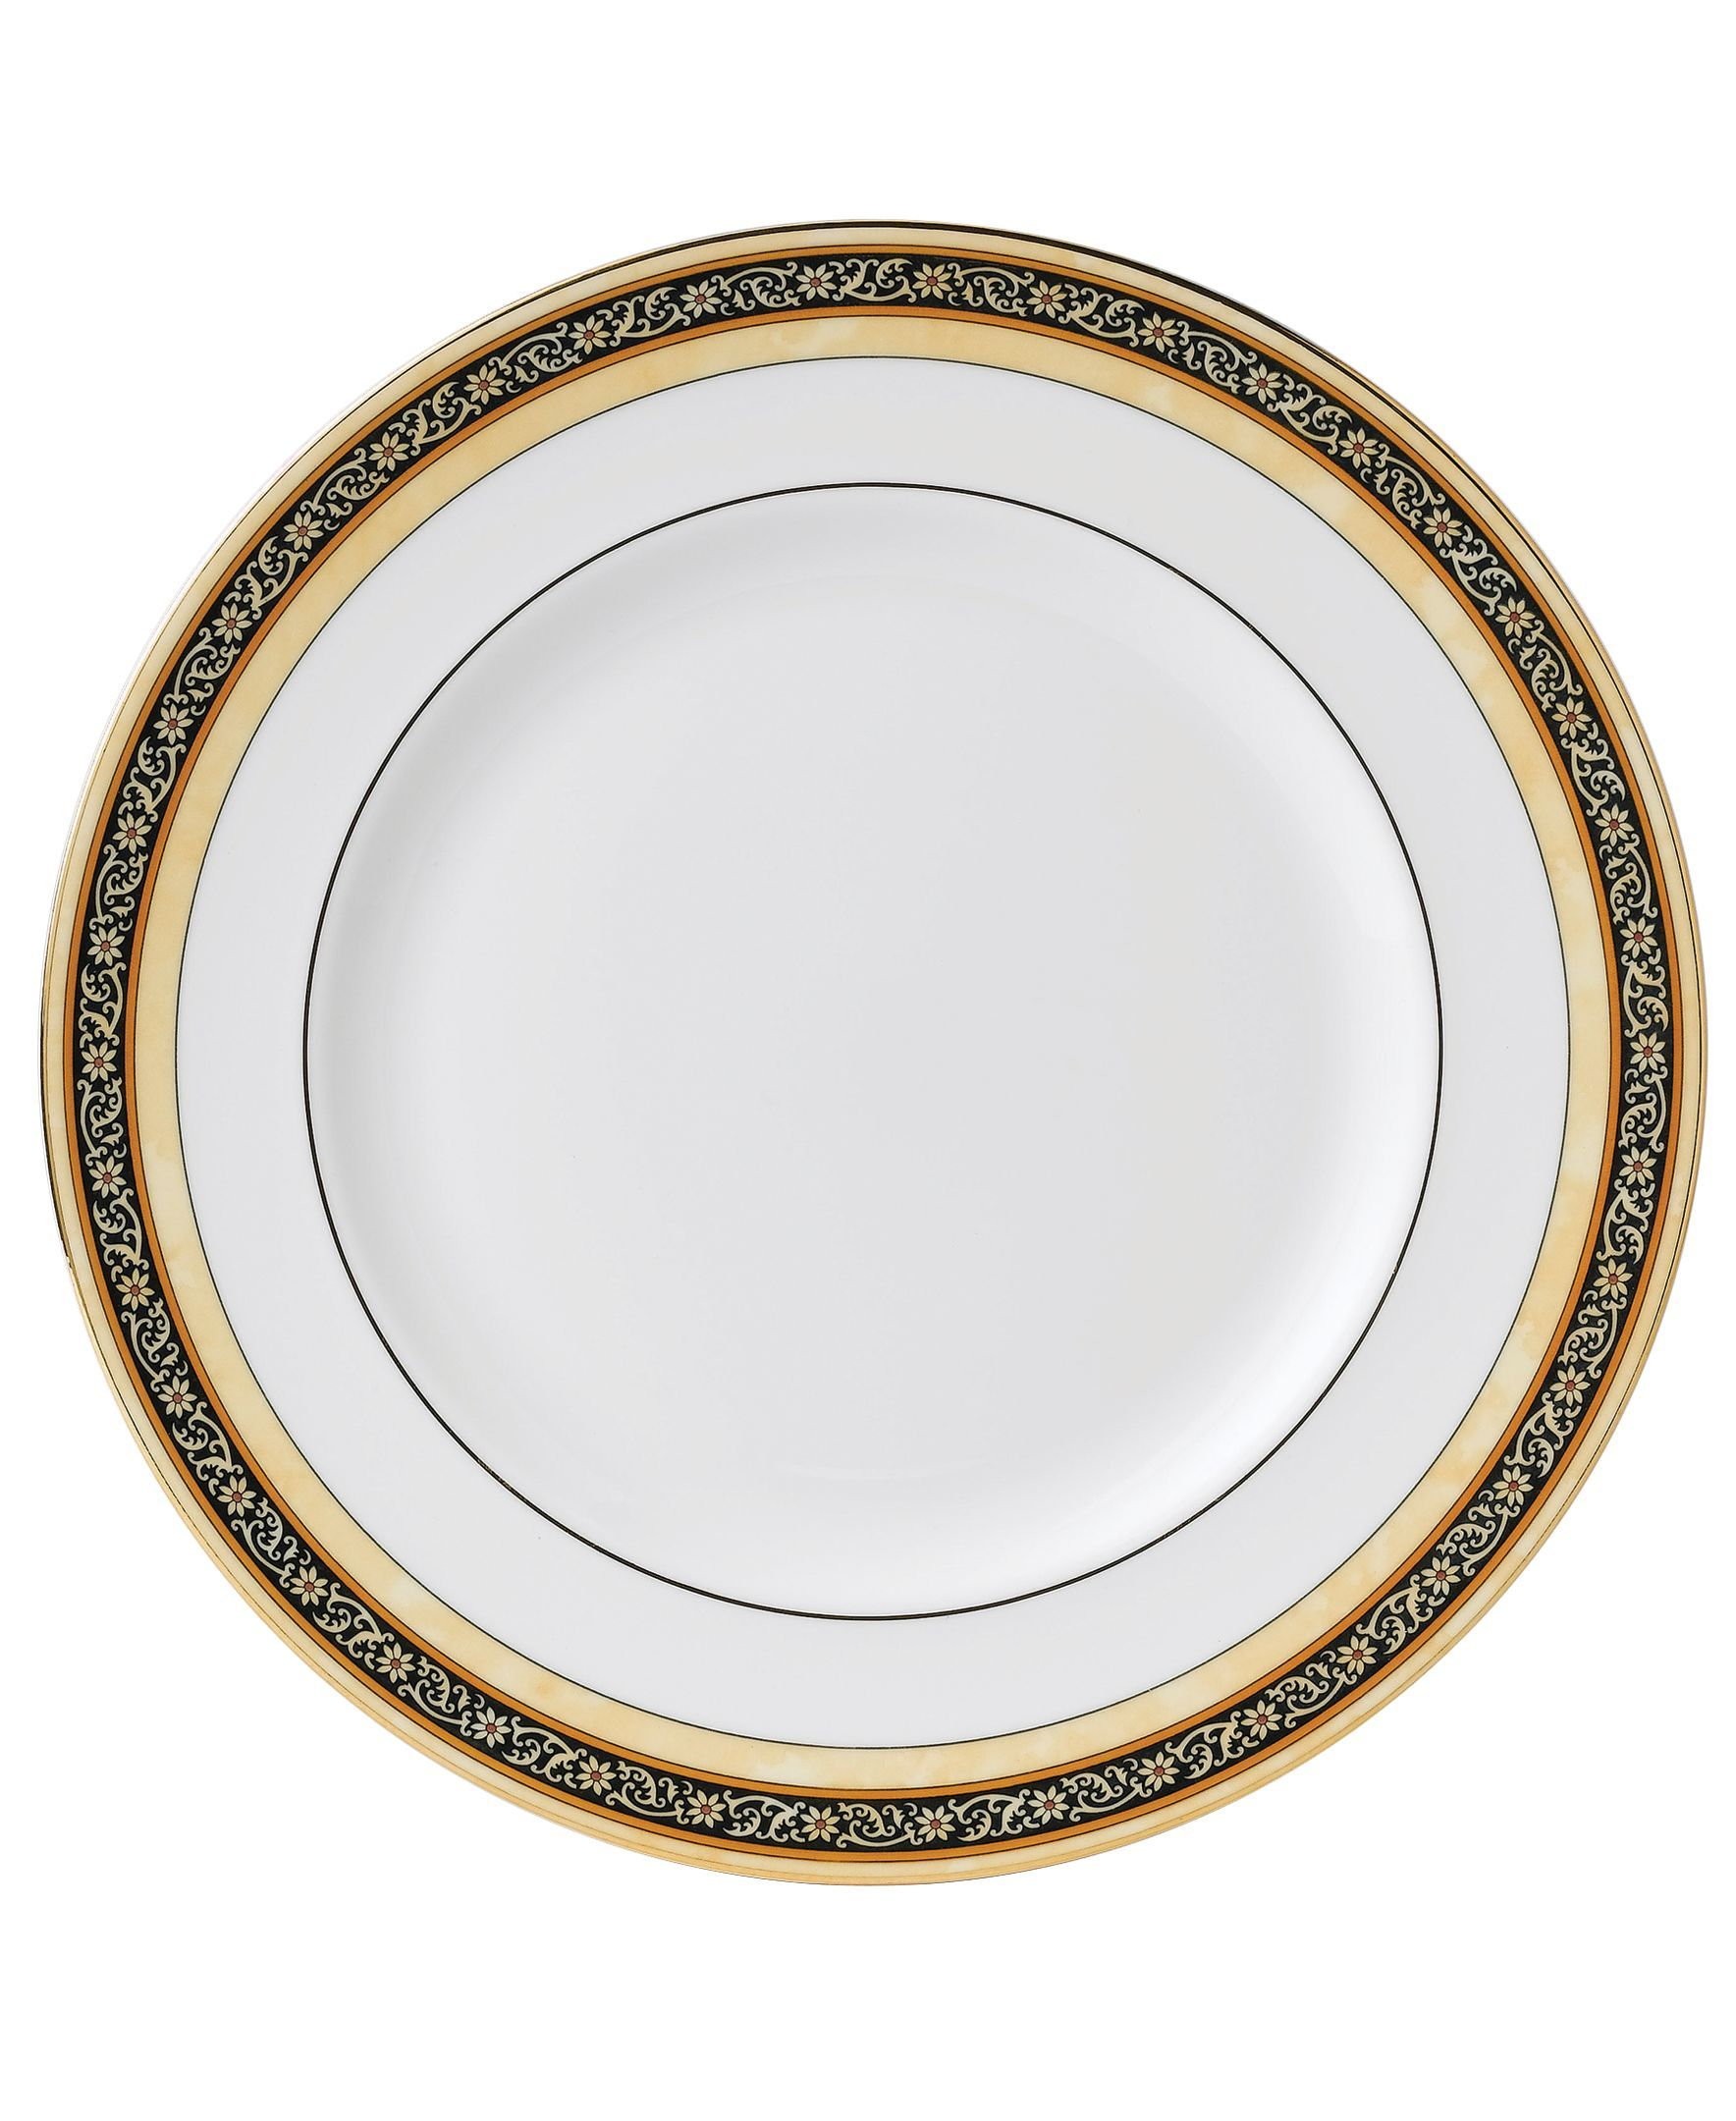 India Dinner Plate Products Wedgwood Dinner Plates Plates